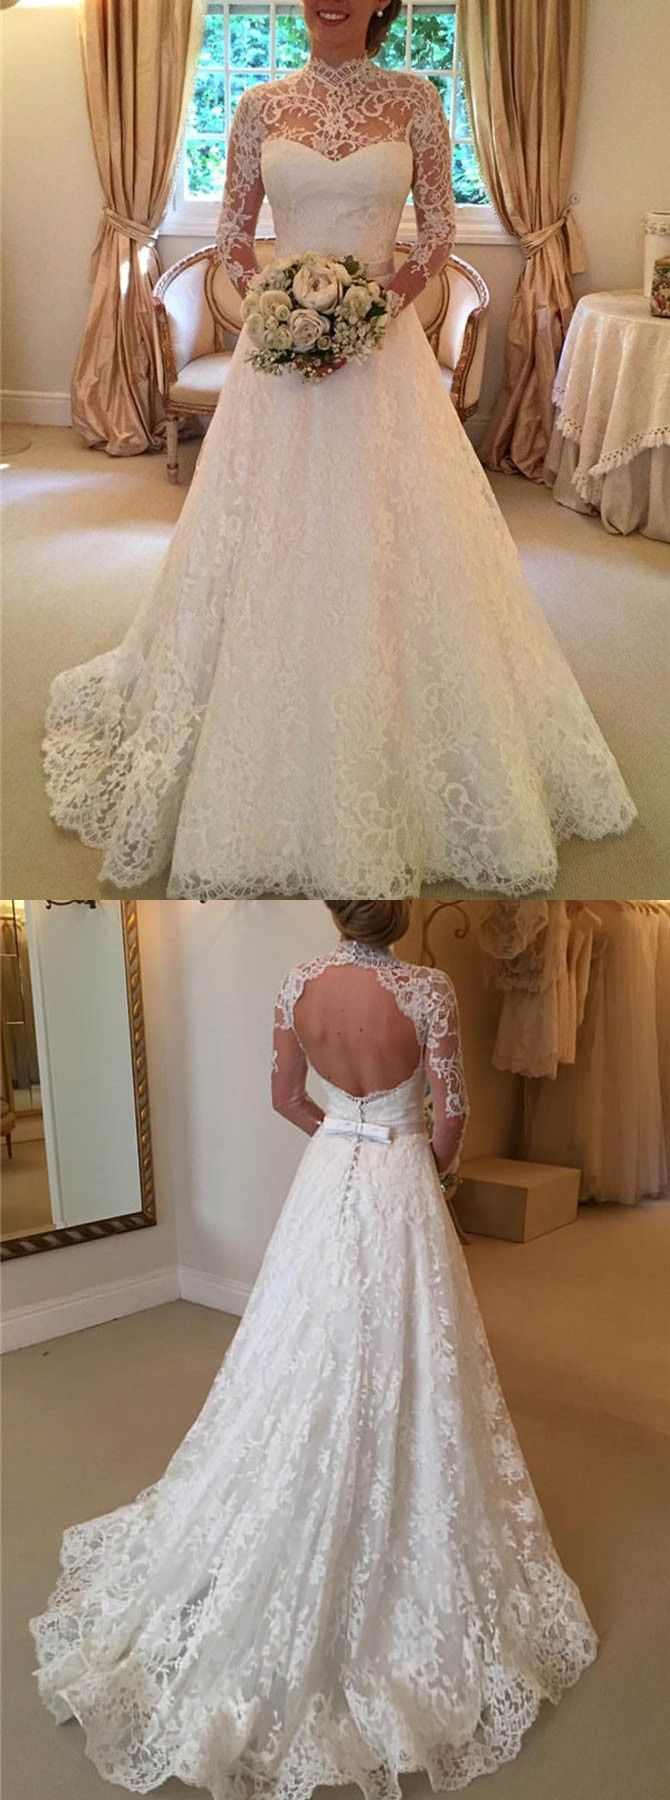 2017 wedding dresses,long wedding dresses,lace wedding dresses ...